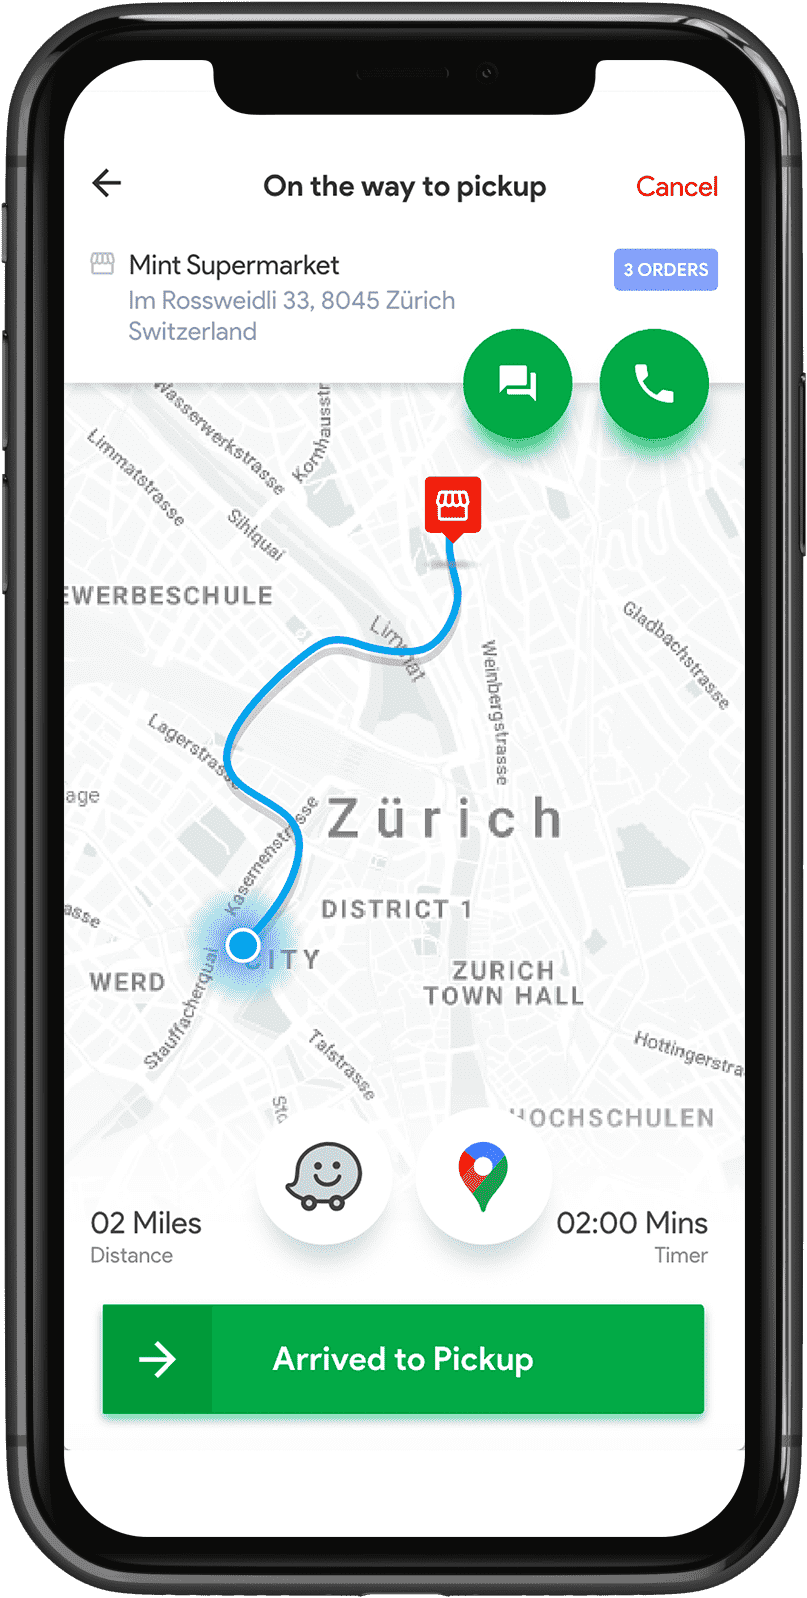 location-guidance-option-in-grocery-delivery-driver-app.png